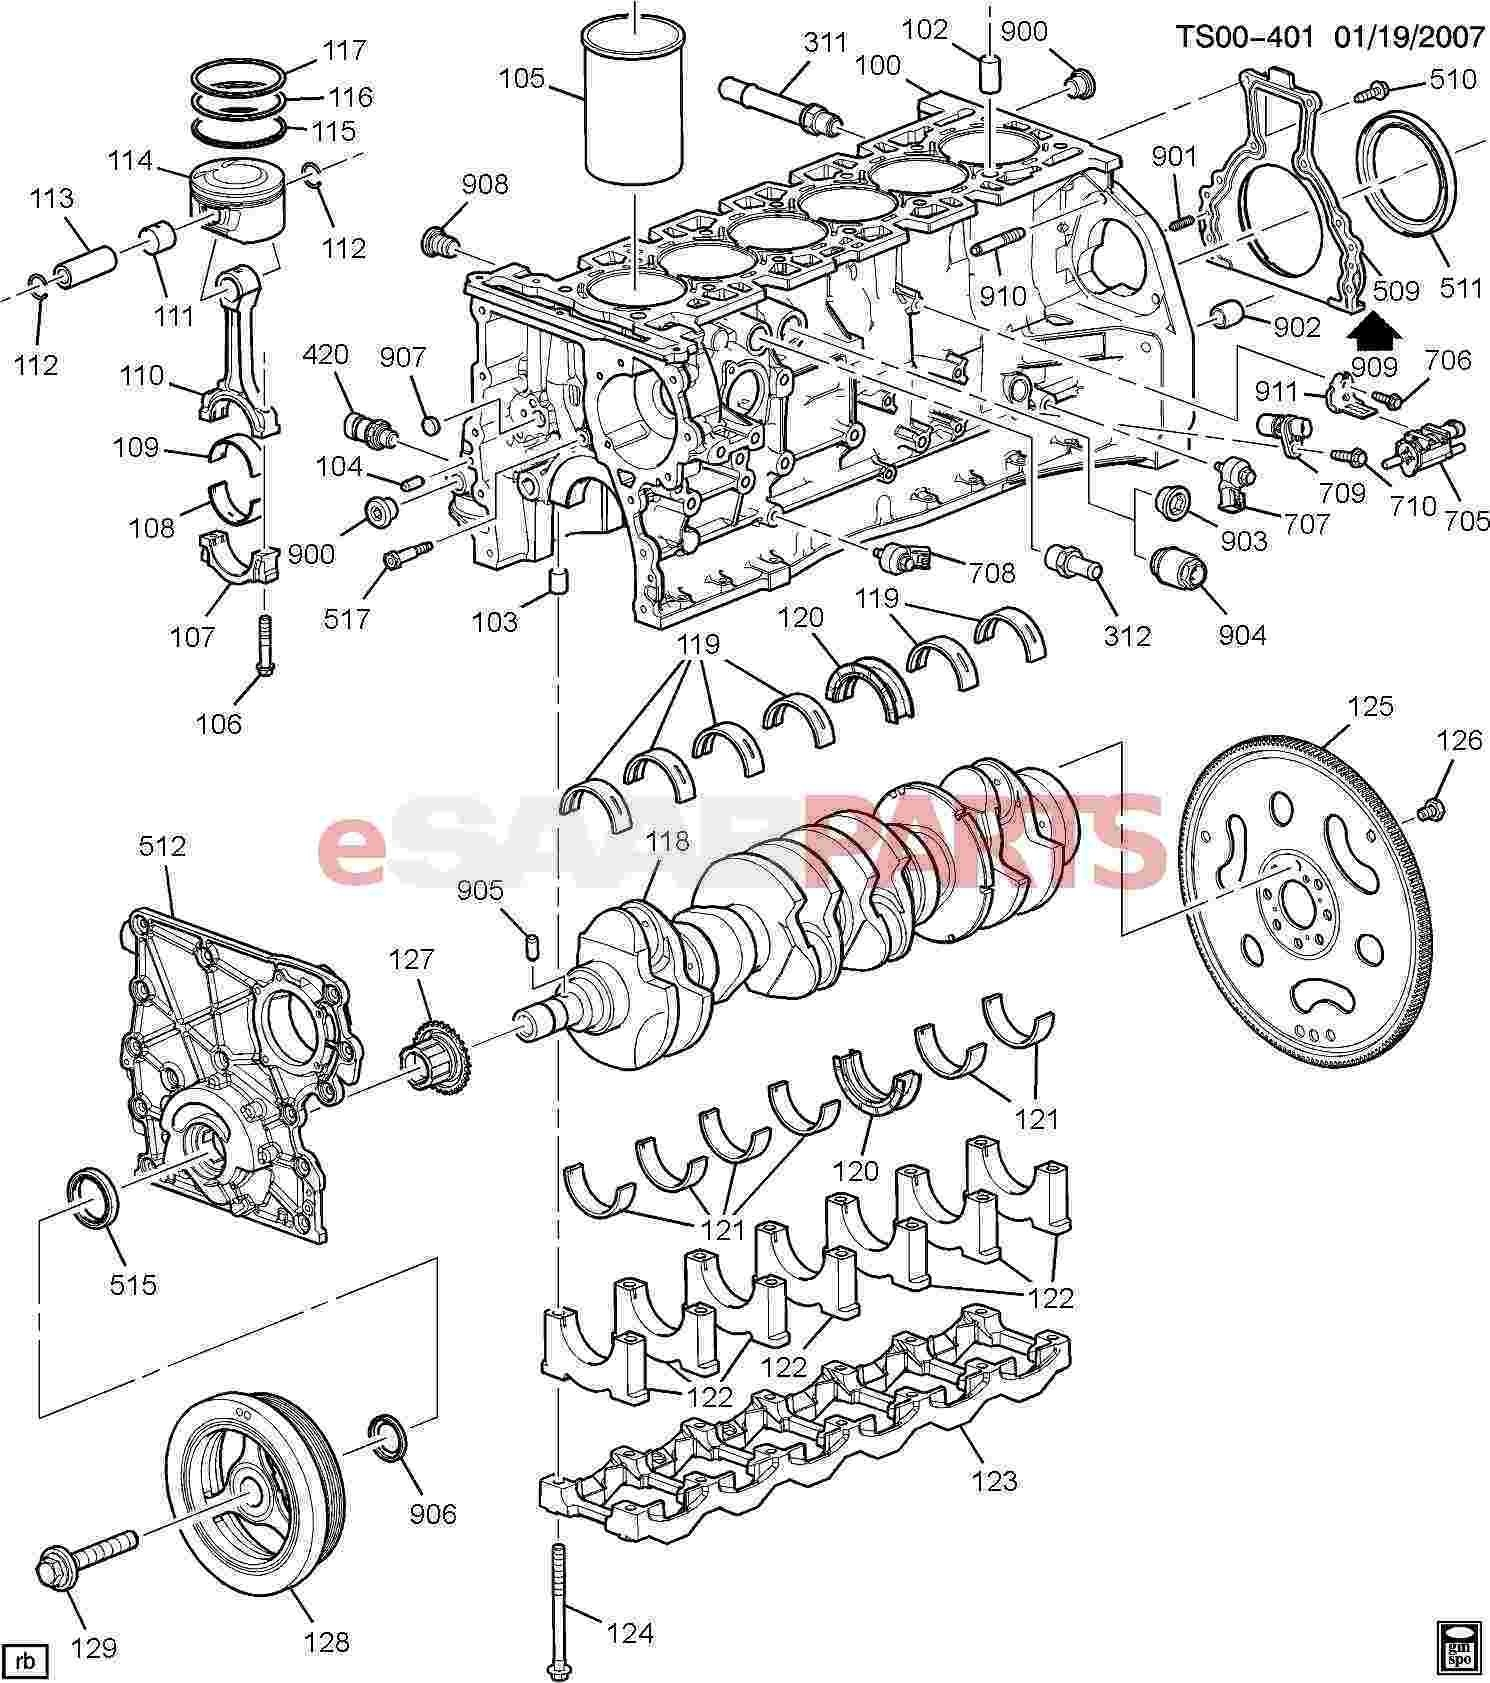 Engine Parts Diagram with Dimensions Auto Engine Parts Diagram ] Saab Plug M16x1 5—14 24 Od society